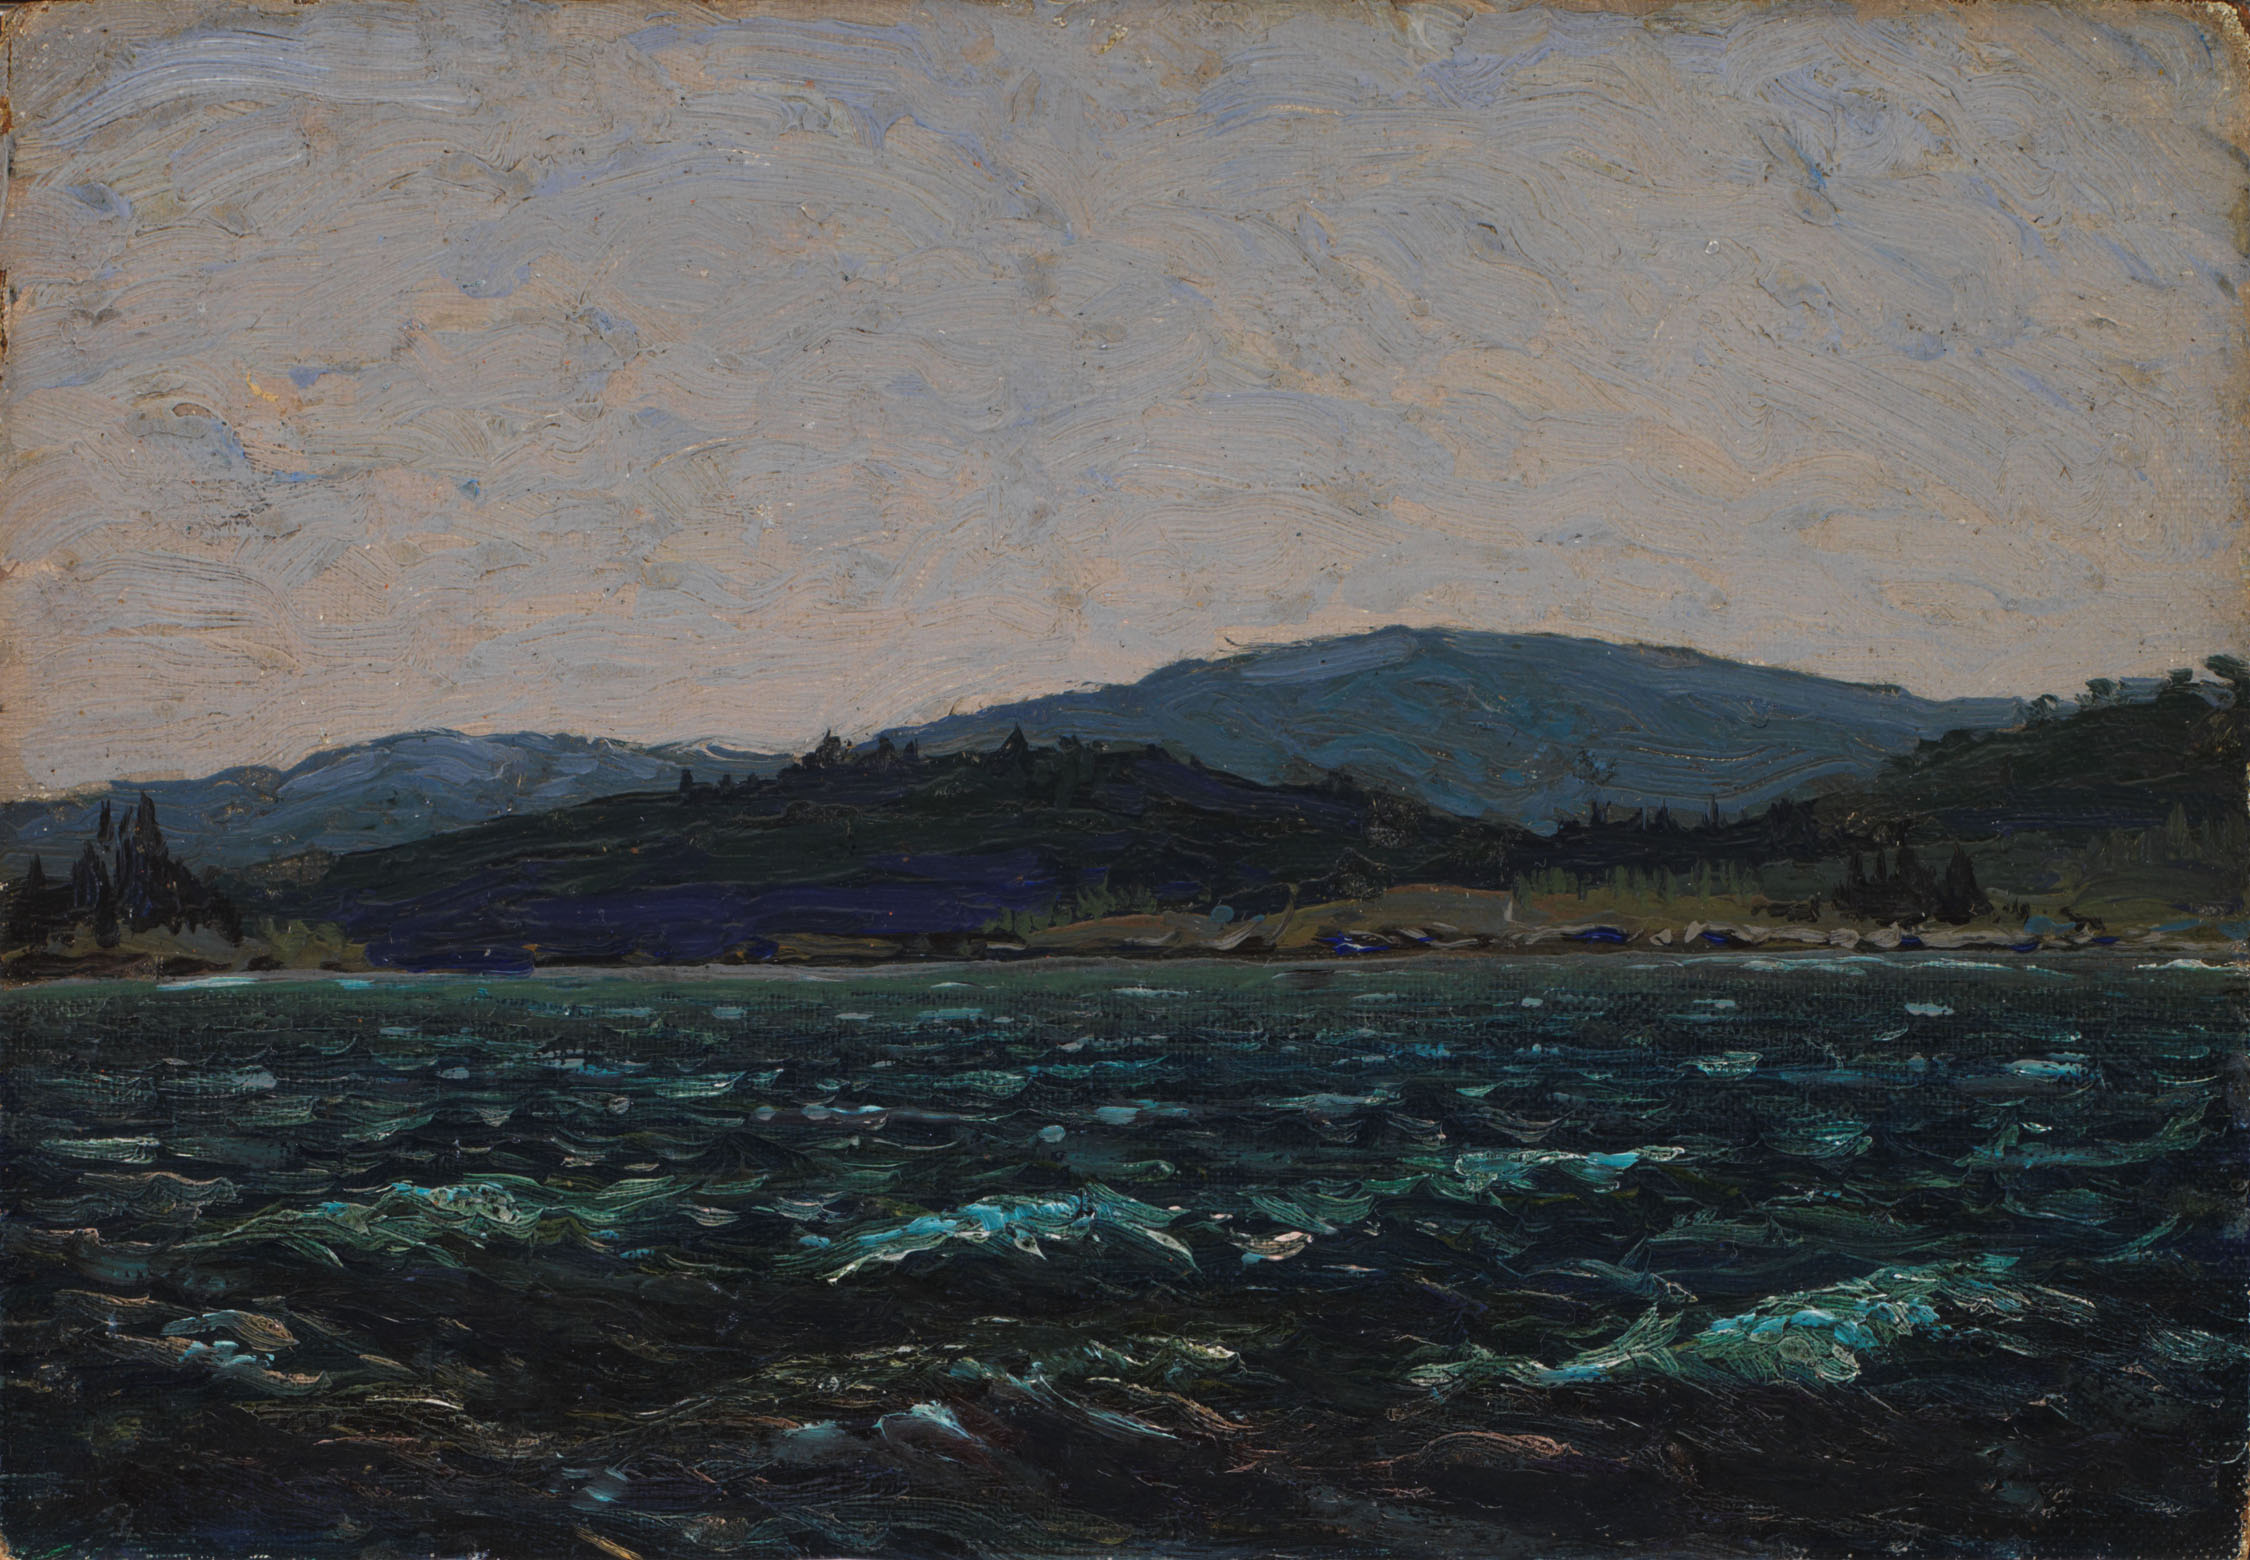 Discovering a Tom Thomson